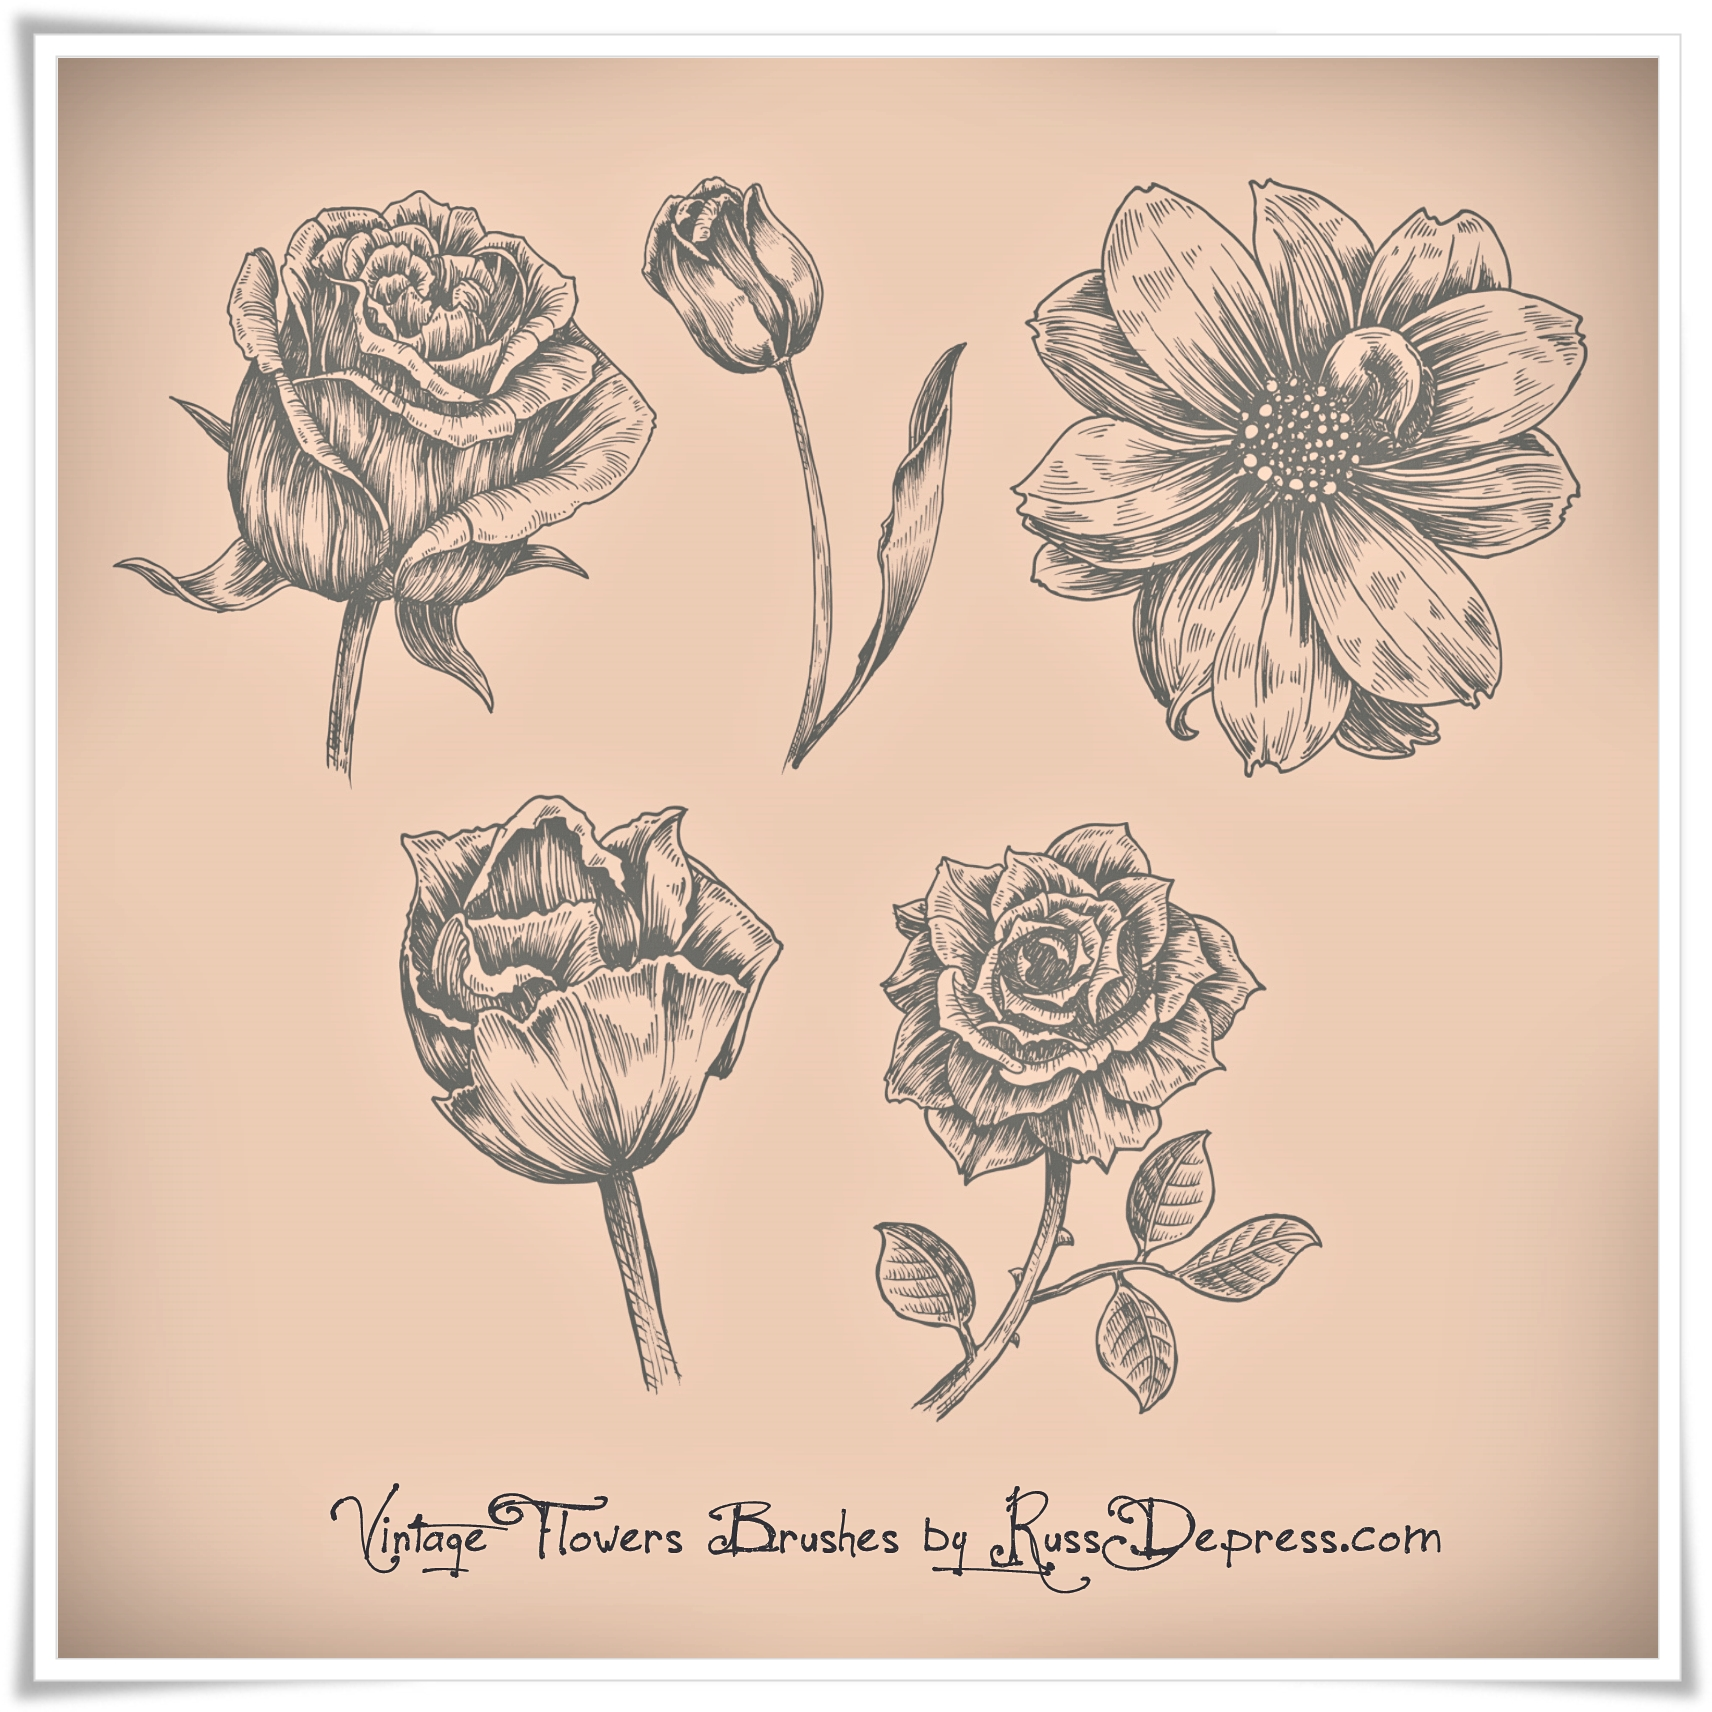 Vintage Flowers High Res Photoshop Brushes